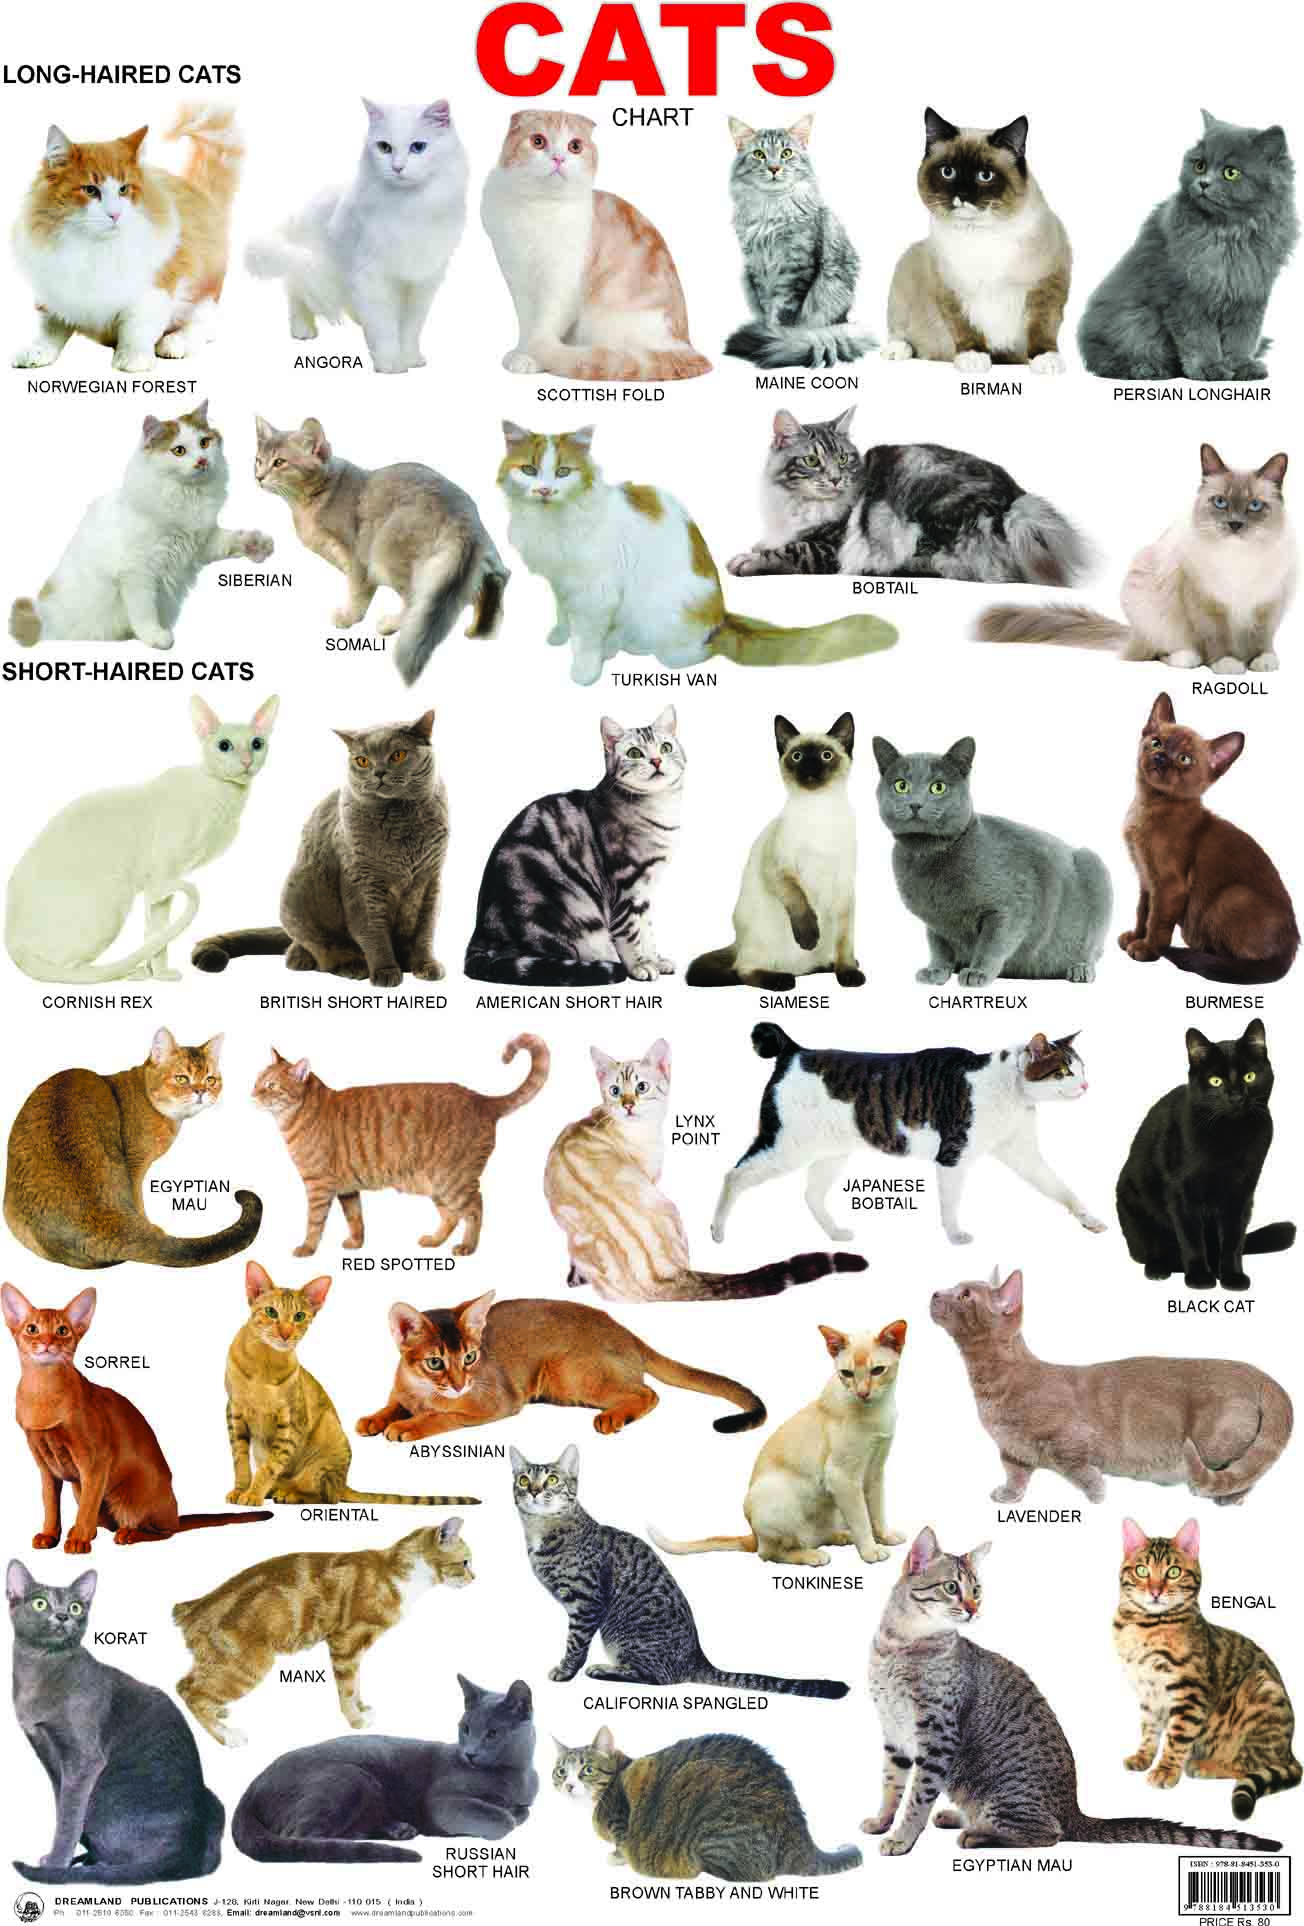 Cat breeds: information, characteristics and behavior